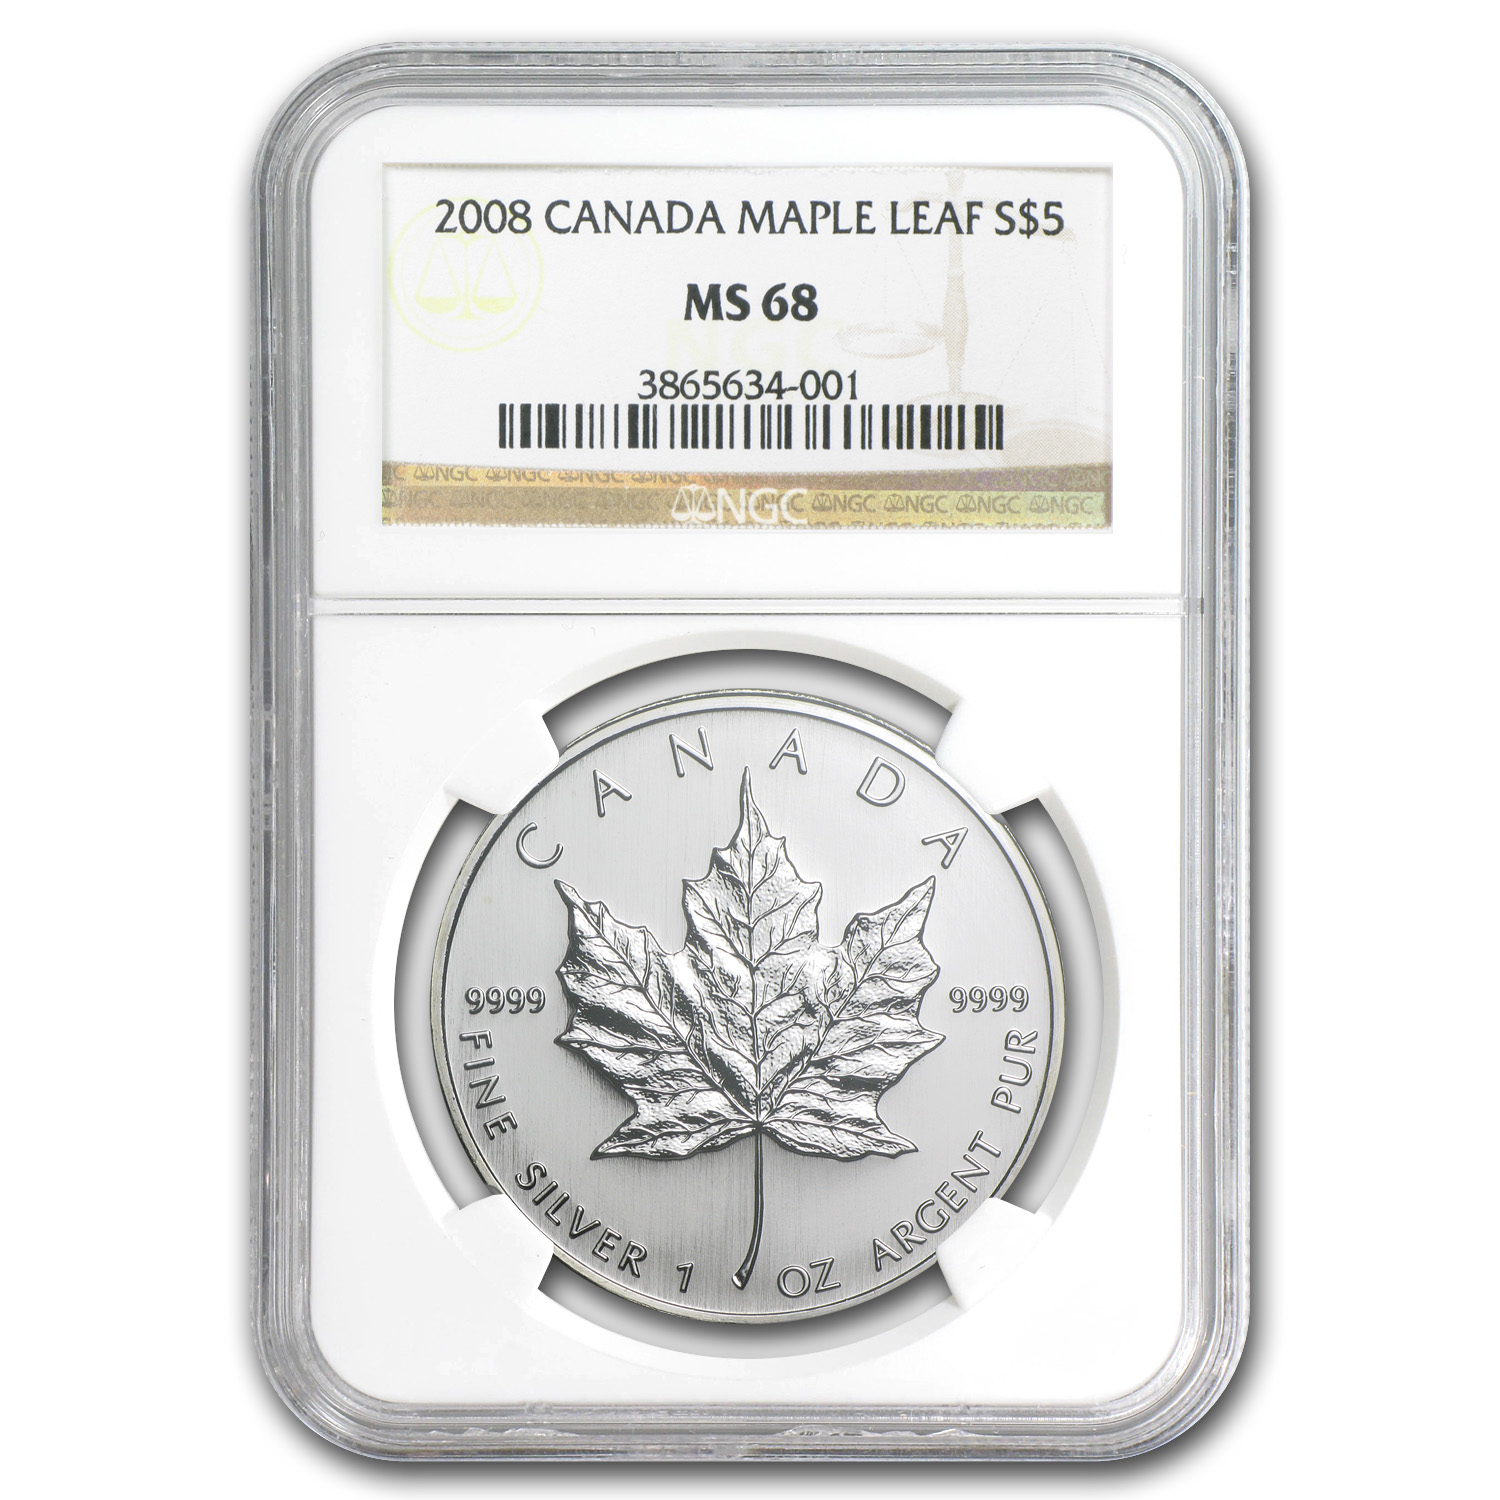 2008 Canada 1 oz Silver Maple Leaf MS-68 NGC